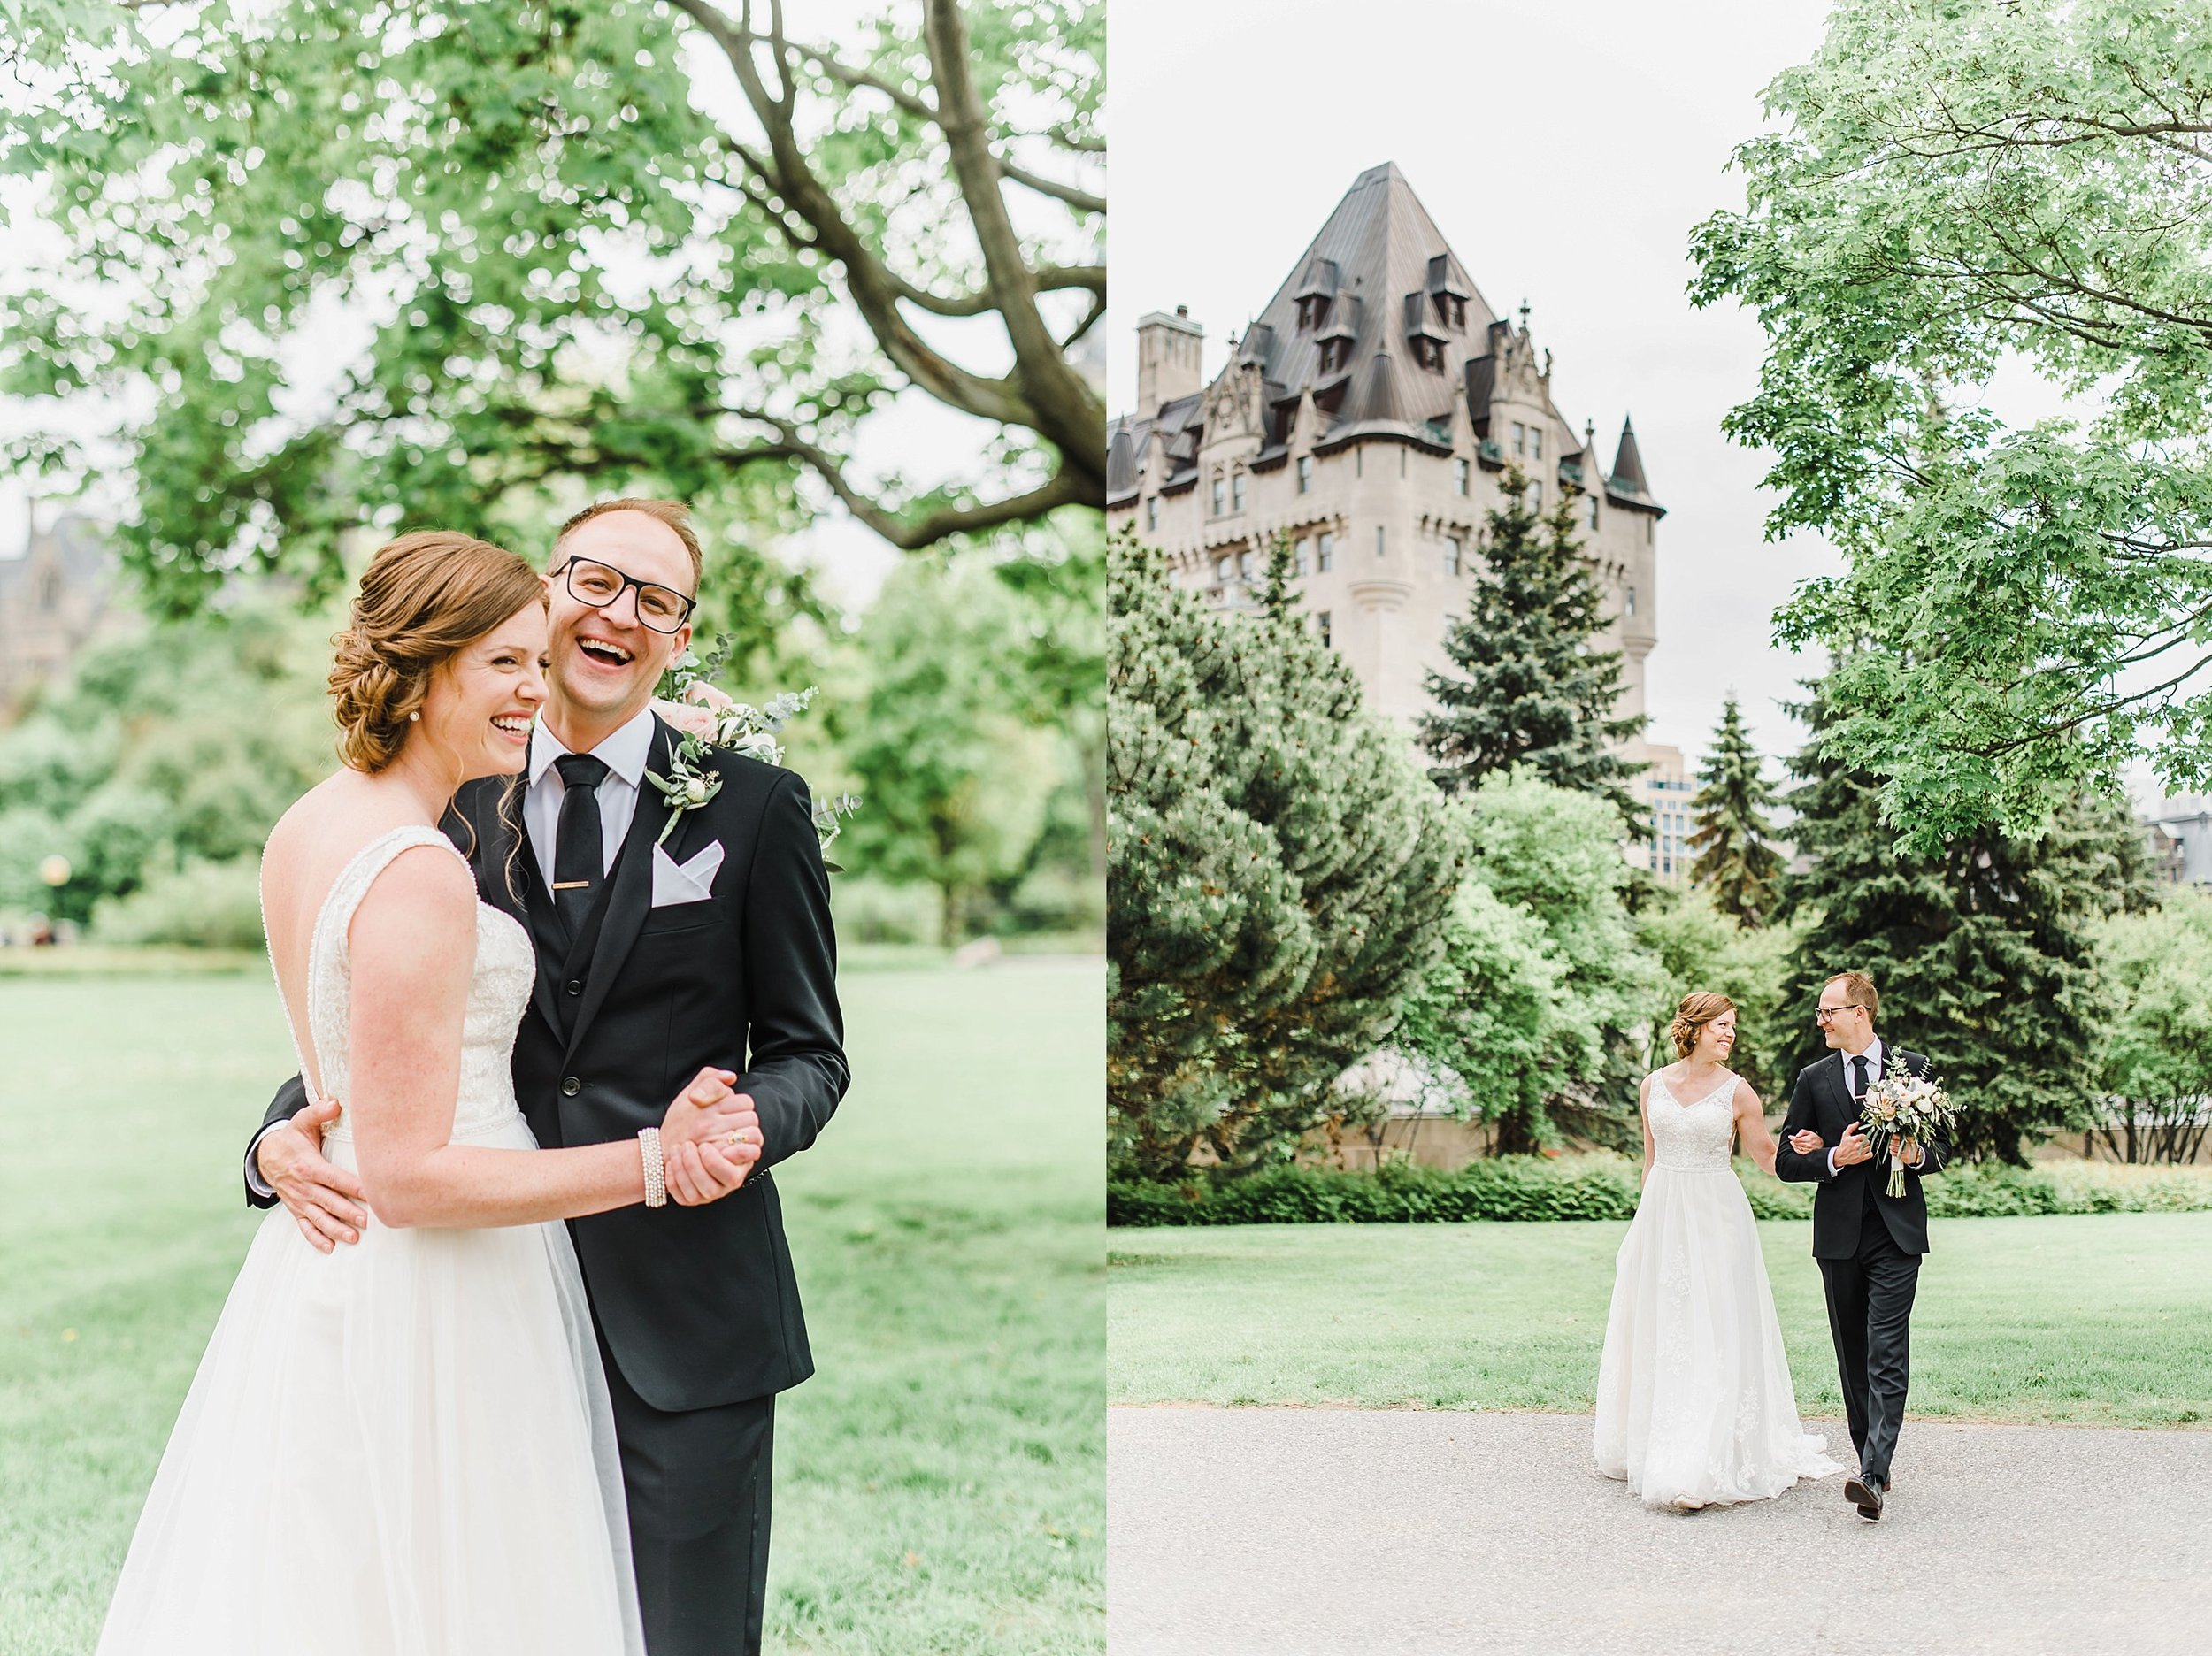 light airy indie fine art ottawa wedding photographer | Ali and Batoul Photography_0310.jpg